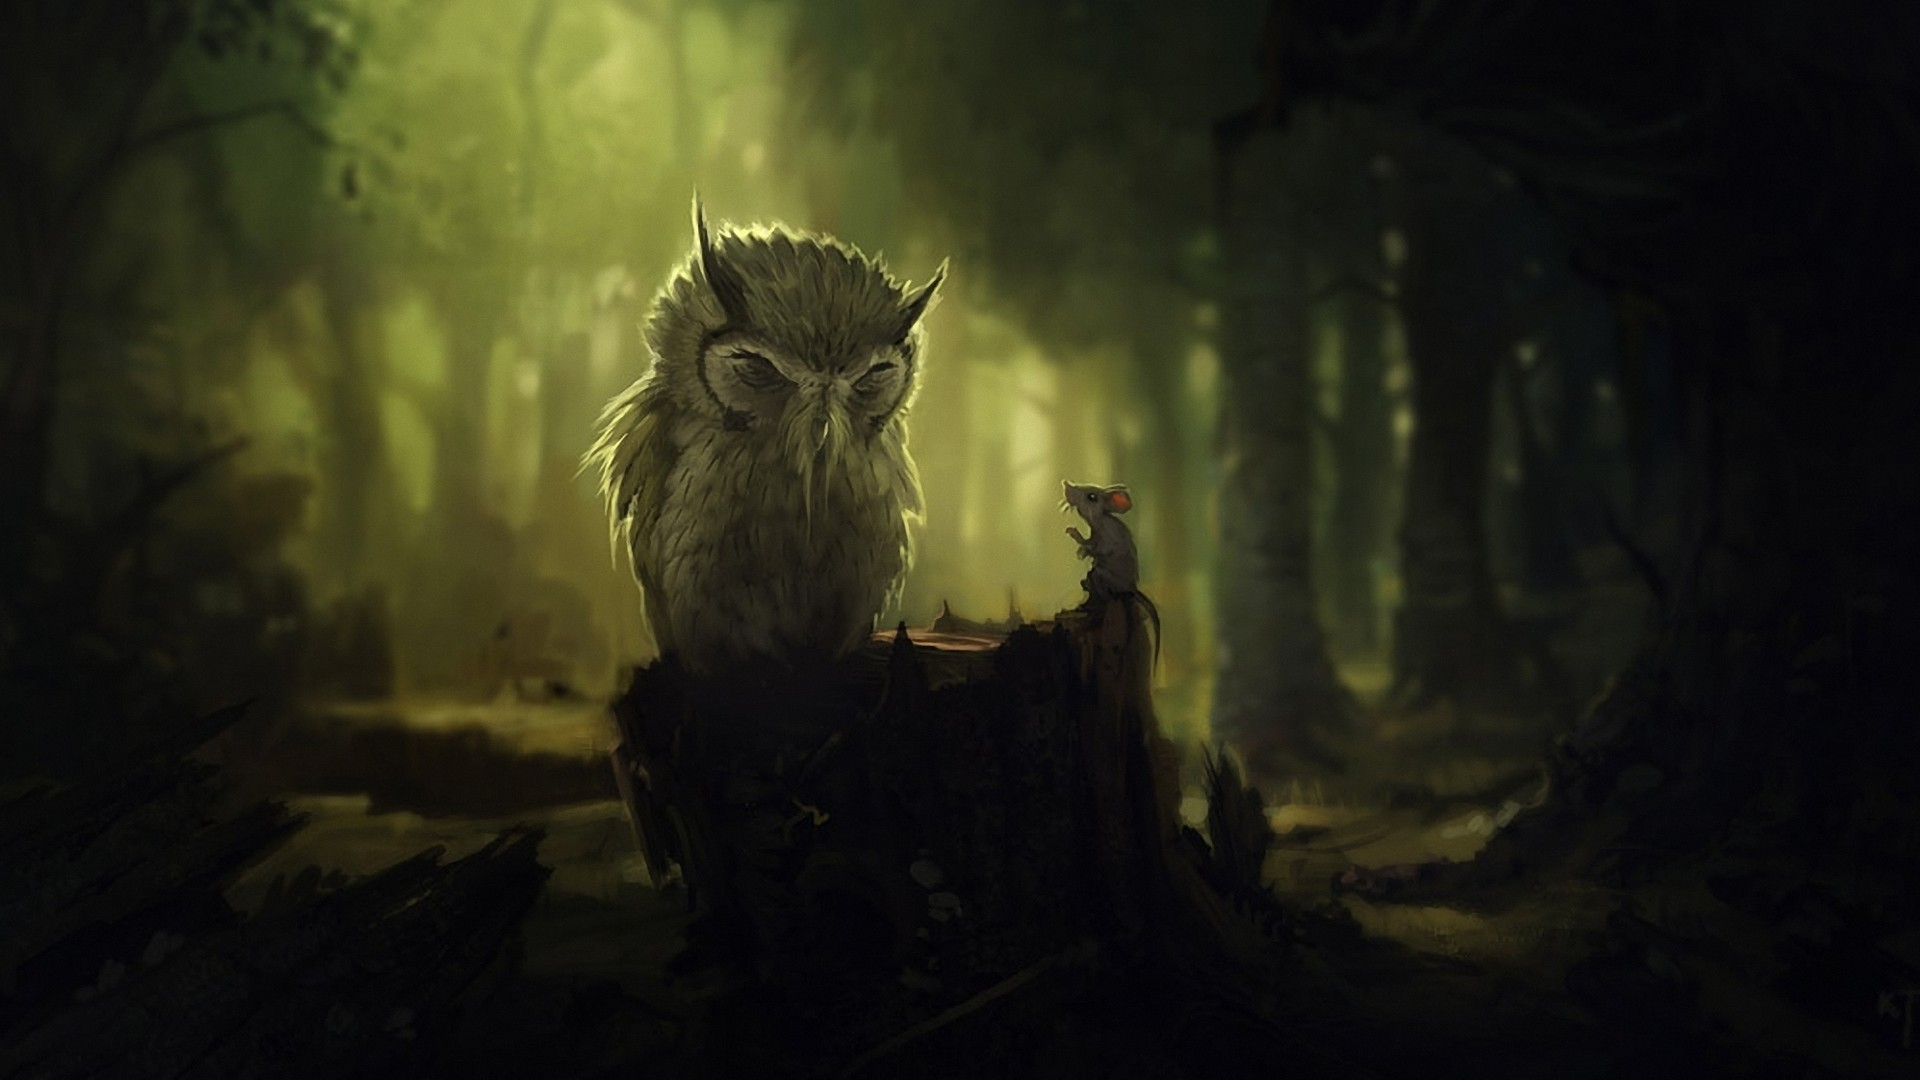 Animal - Owl  Cartoon Wallpaper